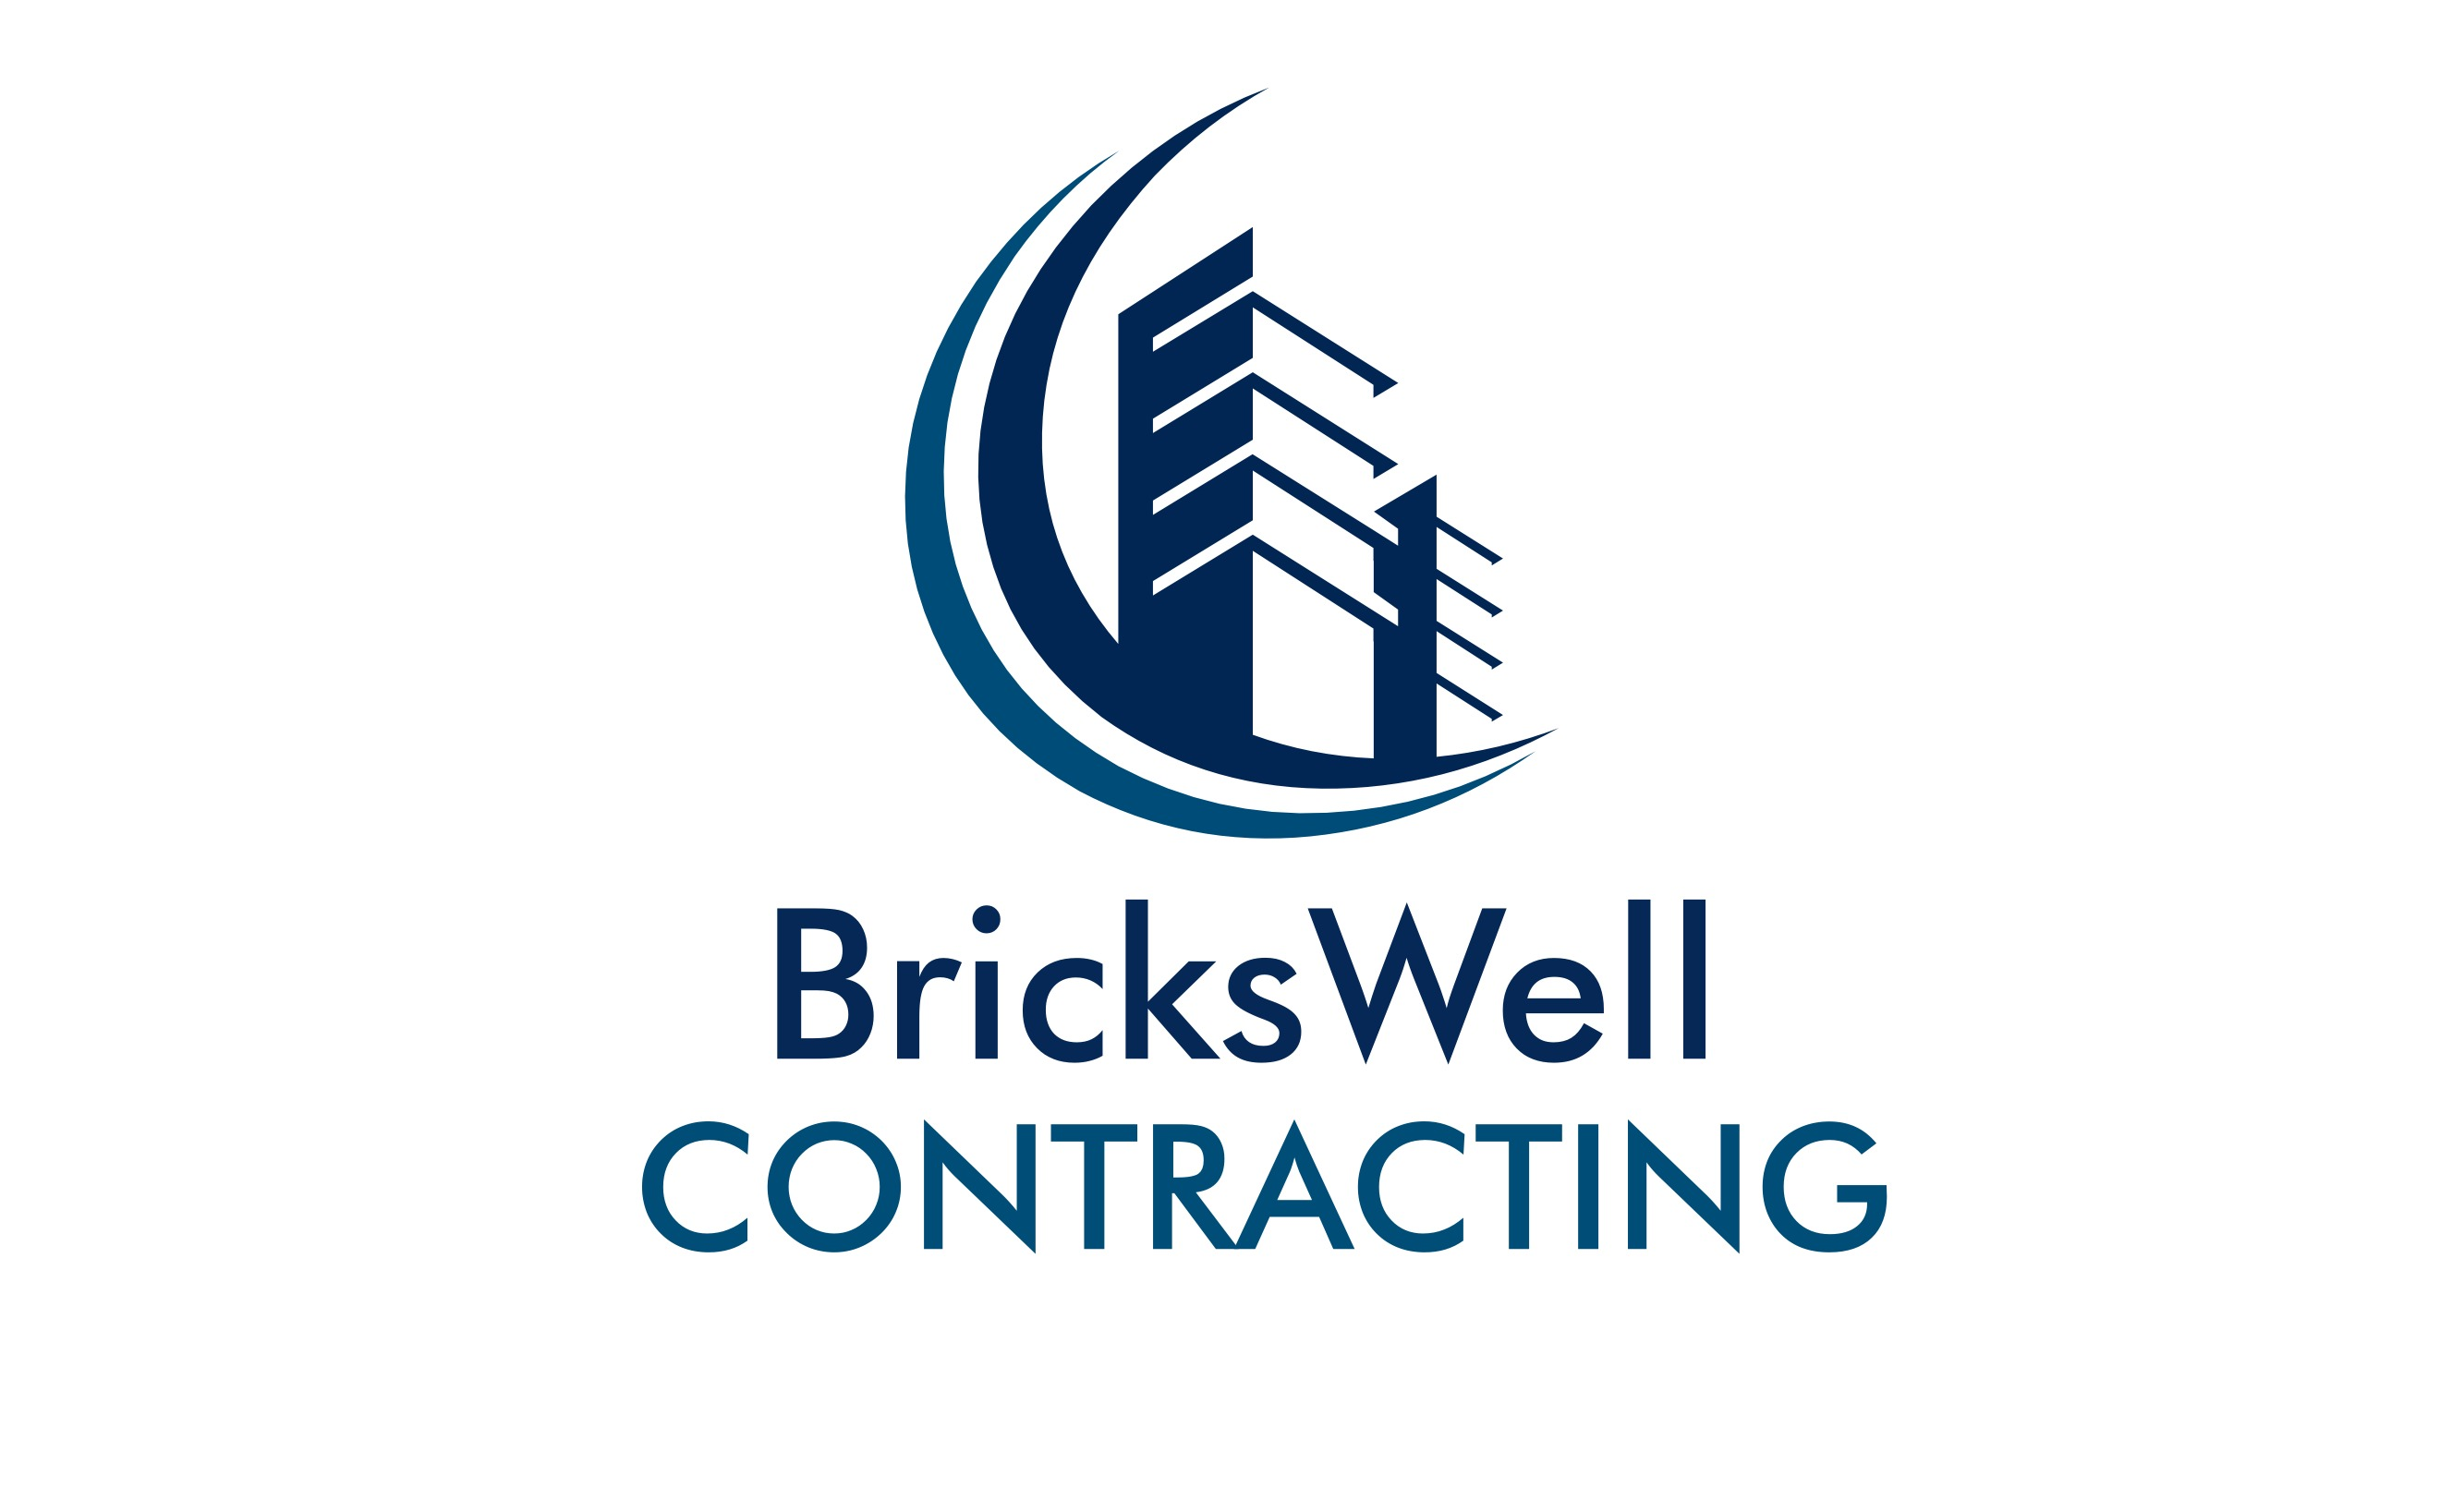 Brickswell Building Contracting LLC